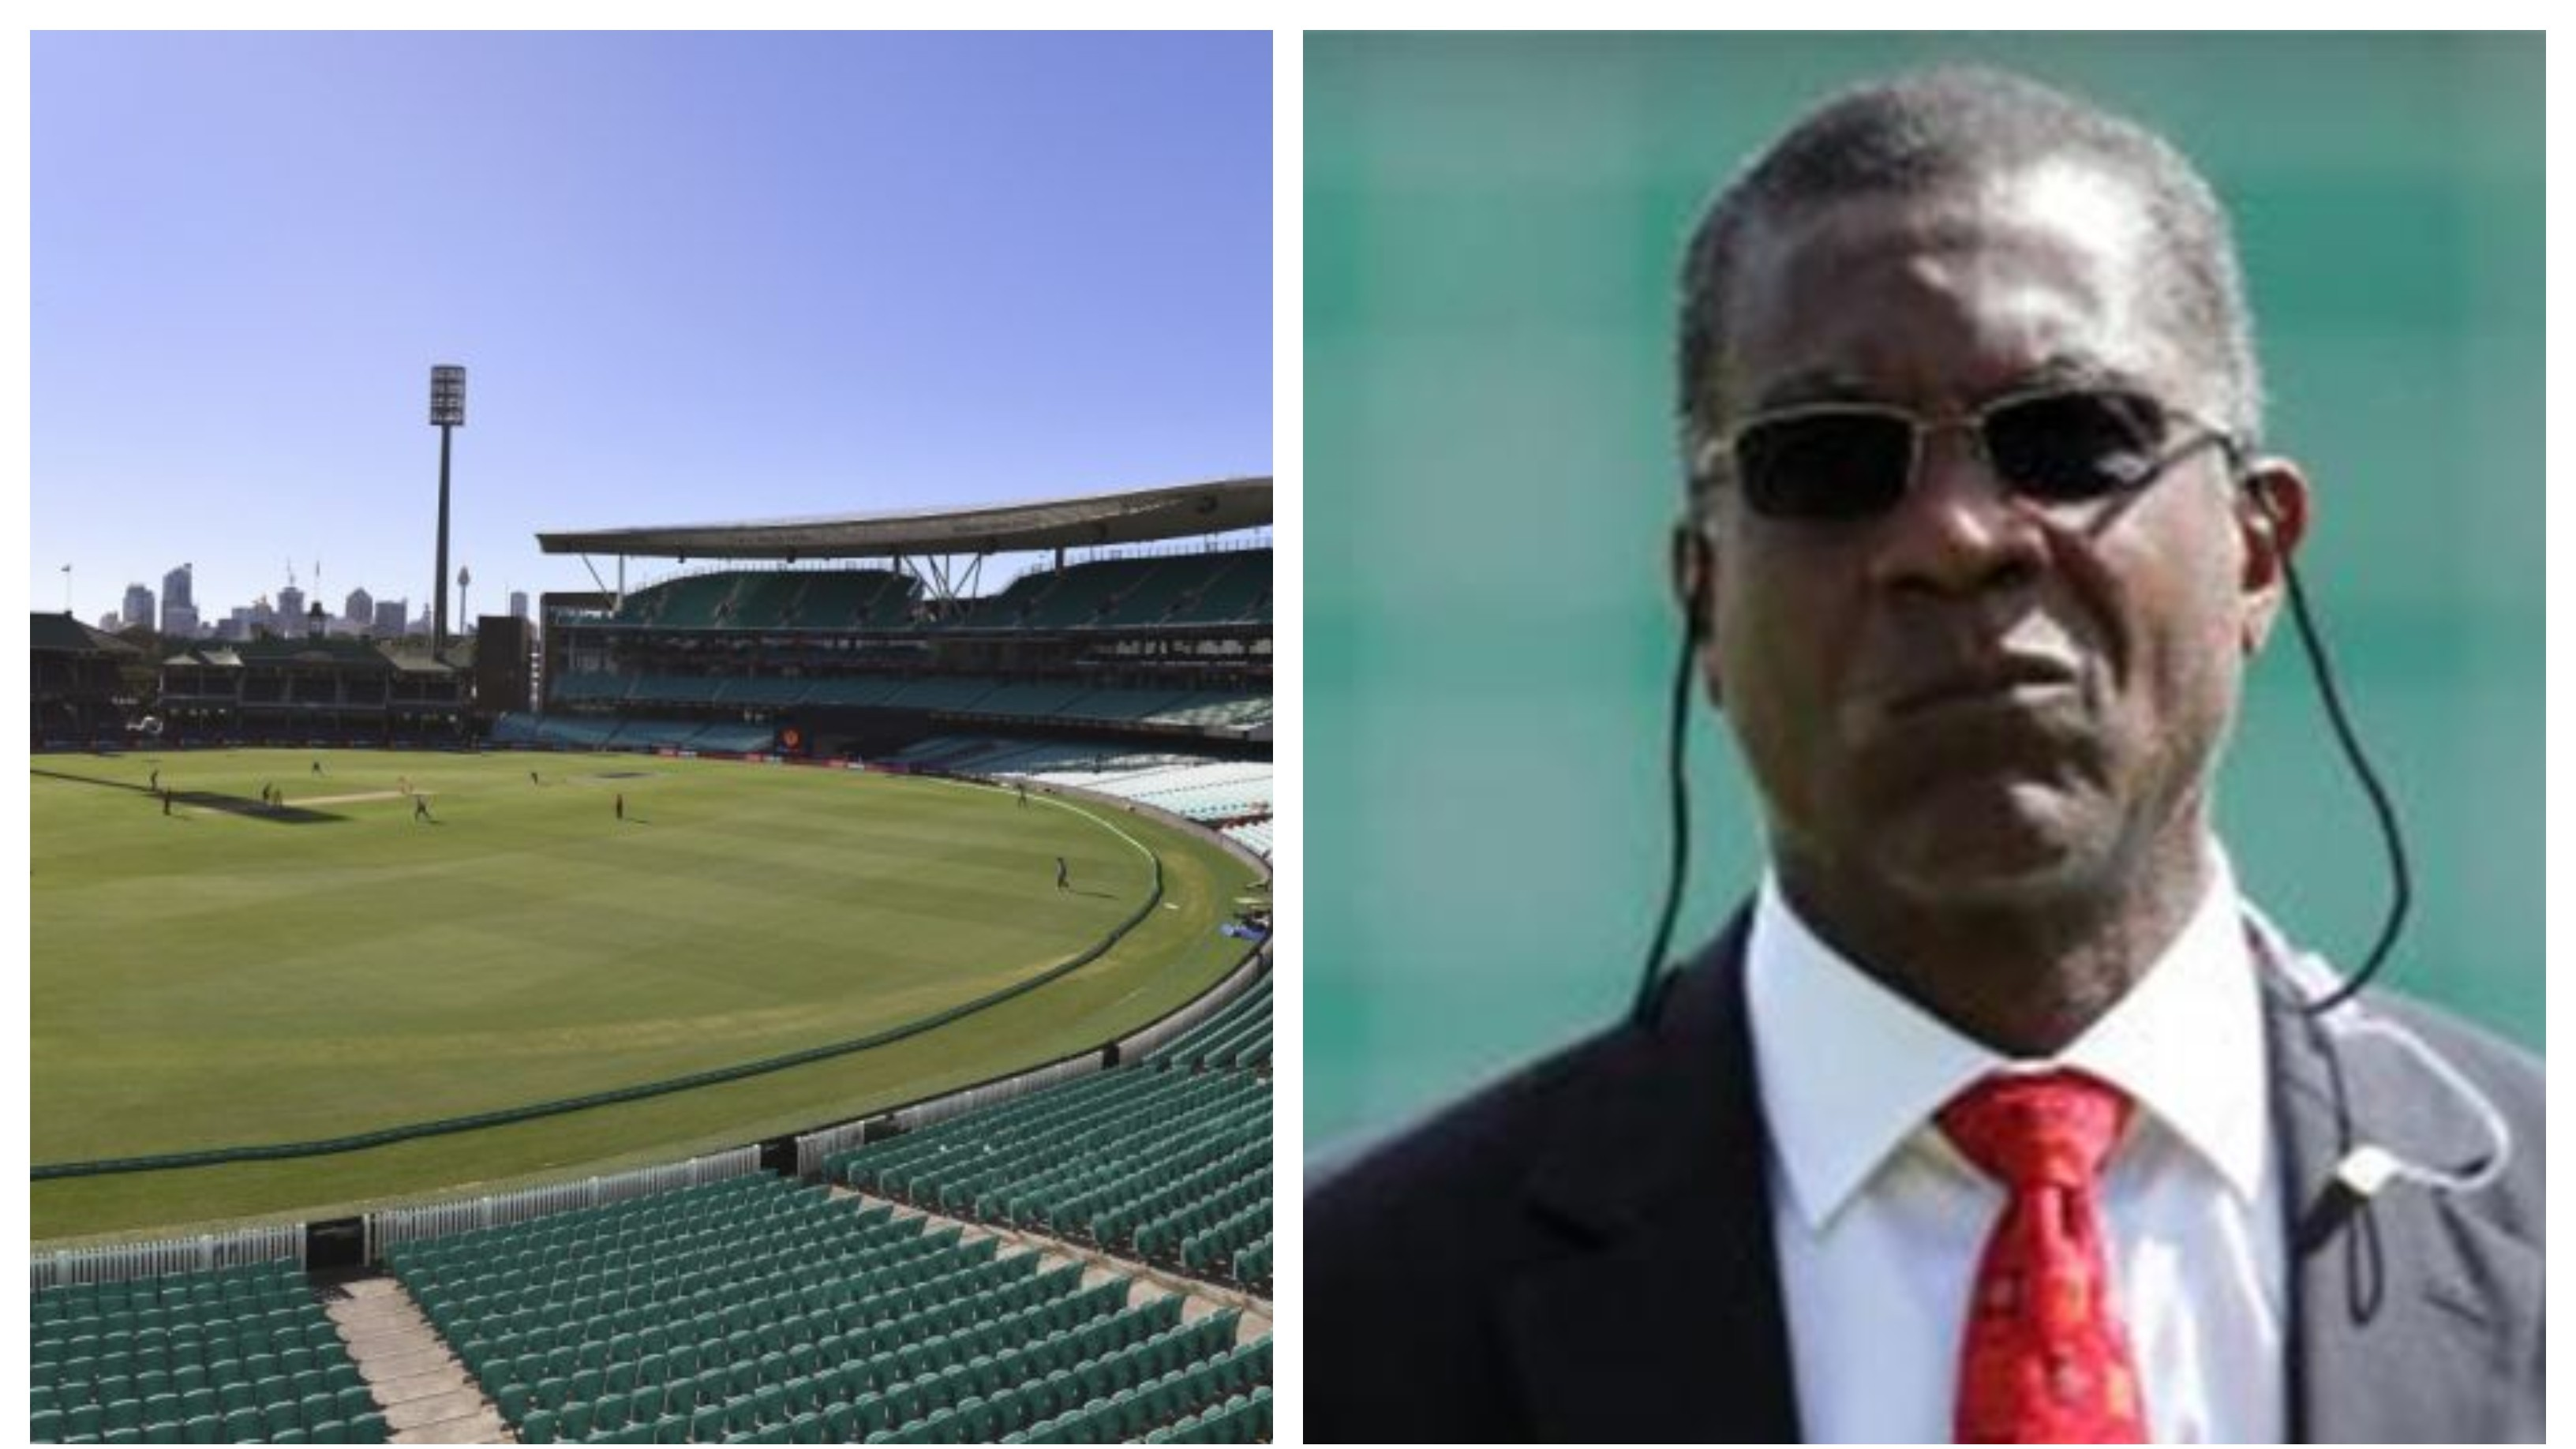 Holding opines whether cricket behind closed doors will be any less entertaining